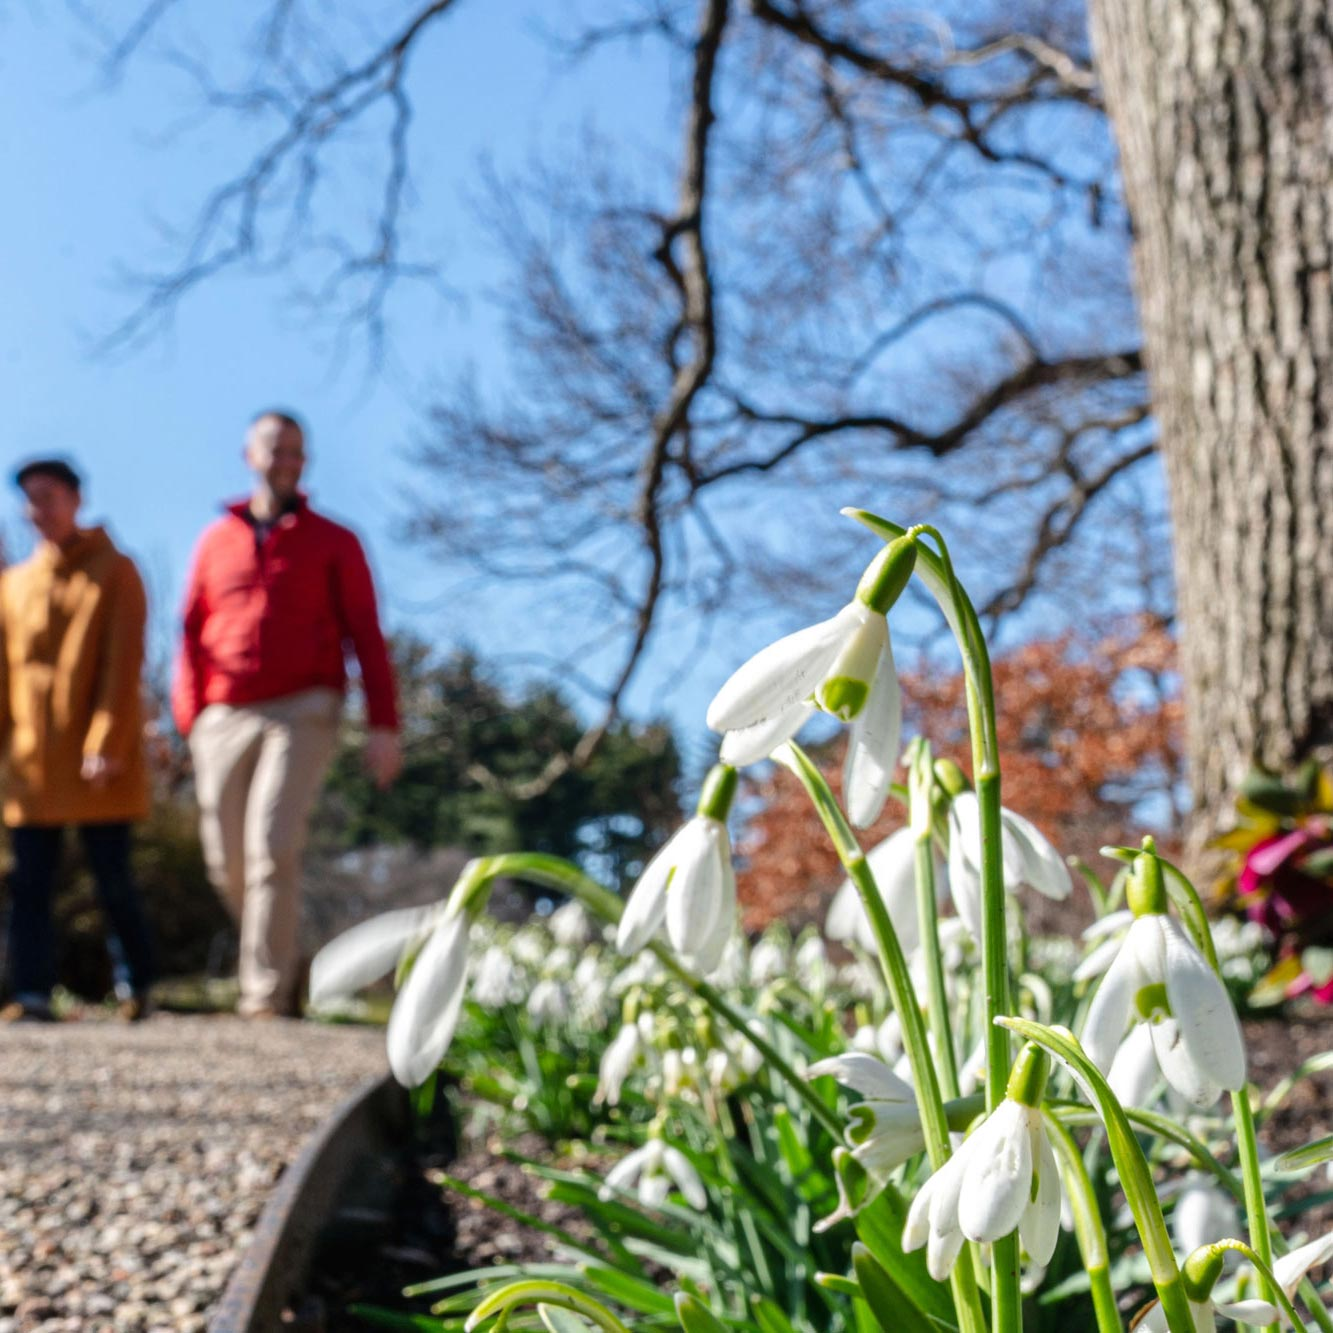 A close-up of snowdrops with visitors strolling by in the background.